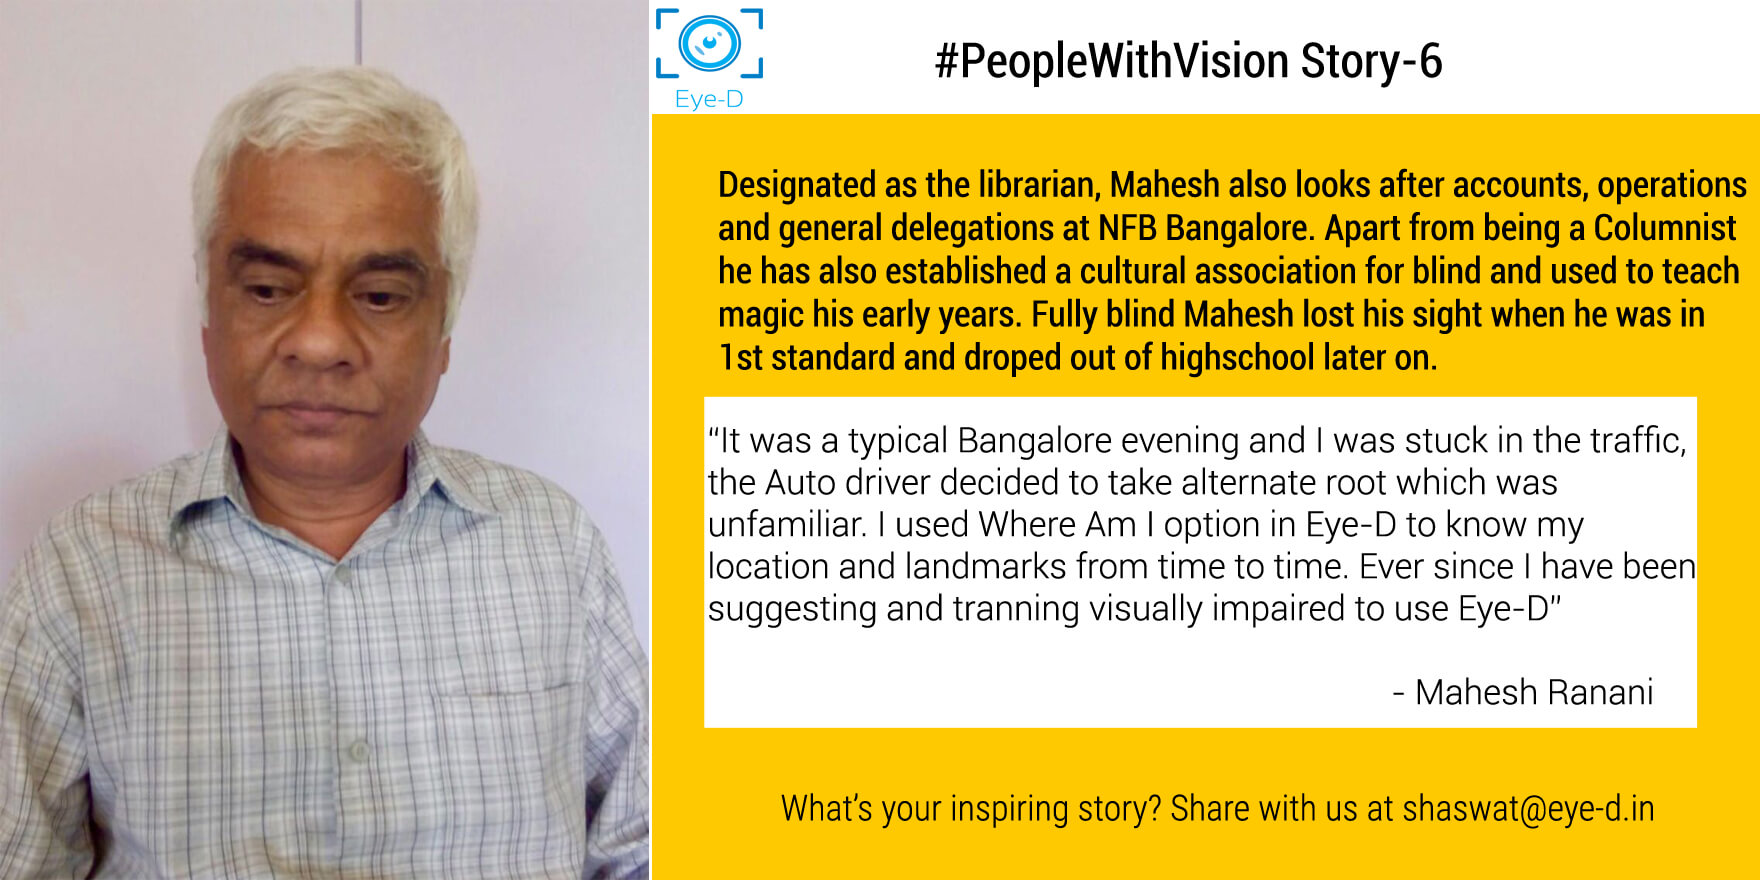 Eye-D App proved helpful for Mahesh while he was travelling alone and was stuck in the traffic for hours. He could become location aware by using the Where Am I feature in the Eye-D app and since then has been advocating about Eye-D and teaching people how to use it to be independent.